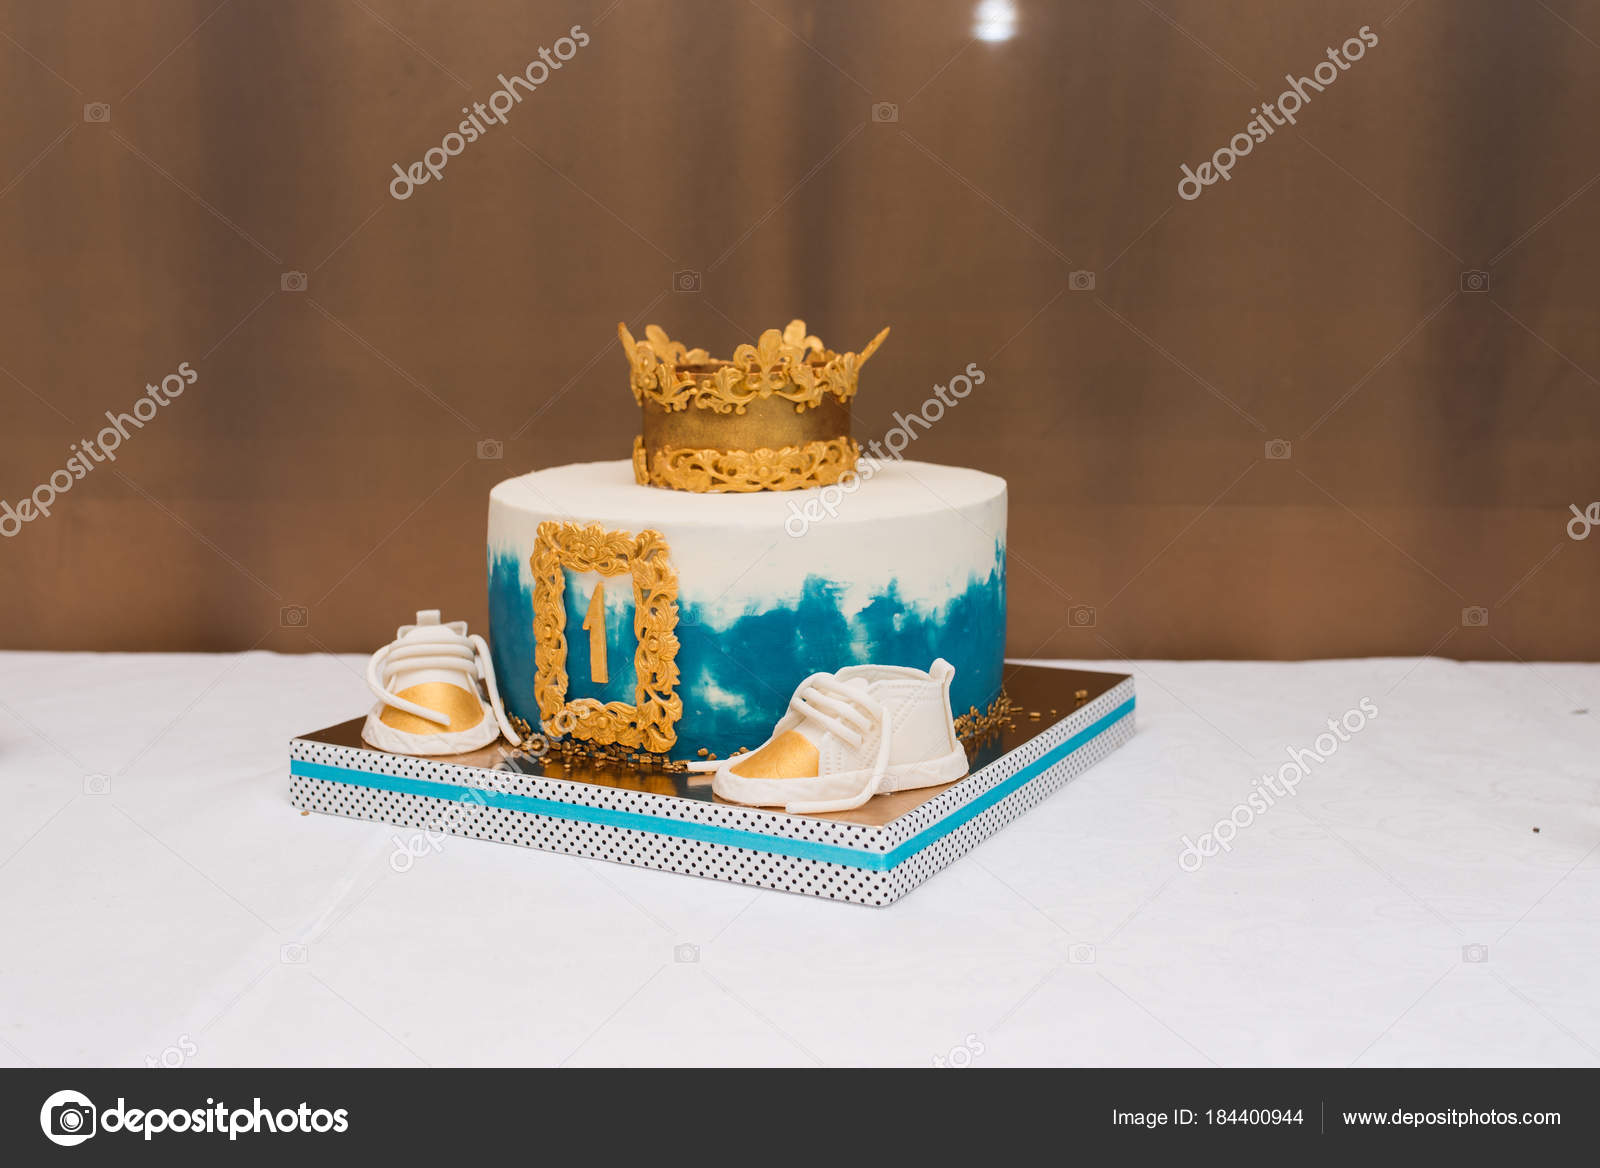 Remarkable Birthday Cake For Boy 1 Year Birthday White Blue Cake Year Old Funny Birthday Cards Online Sheoxdamsfinfo